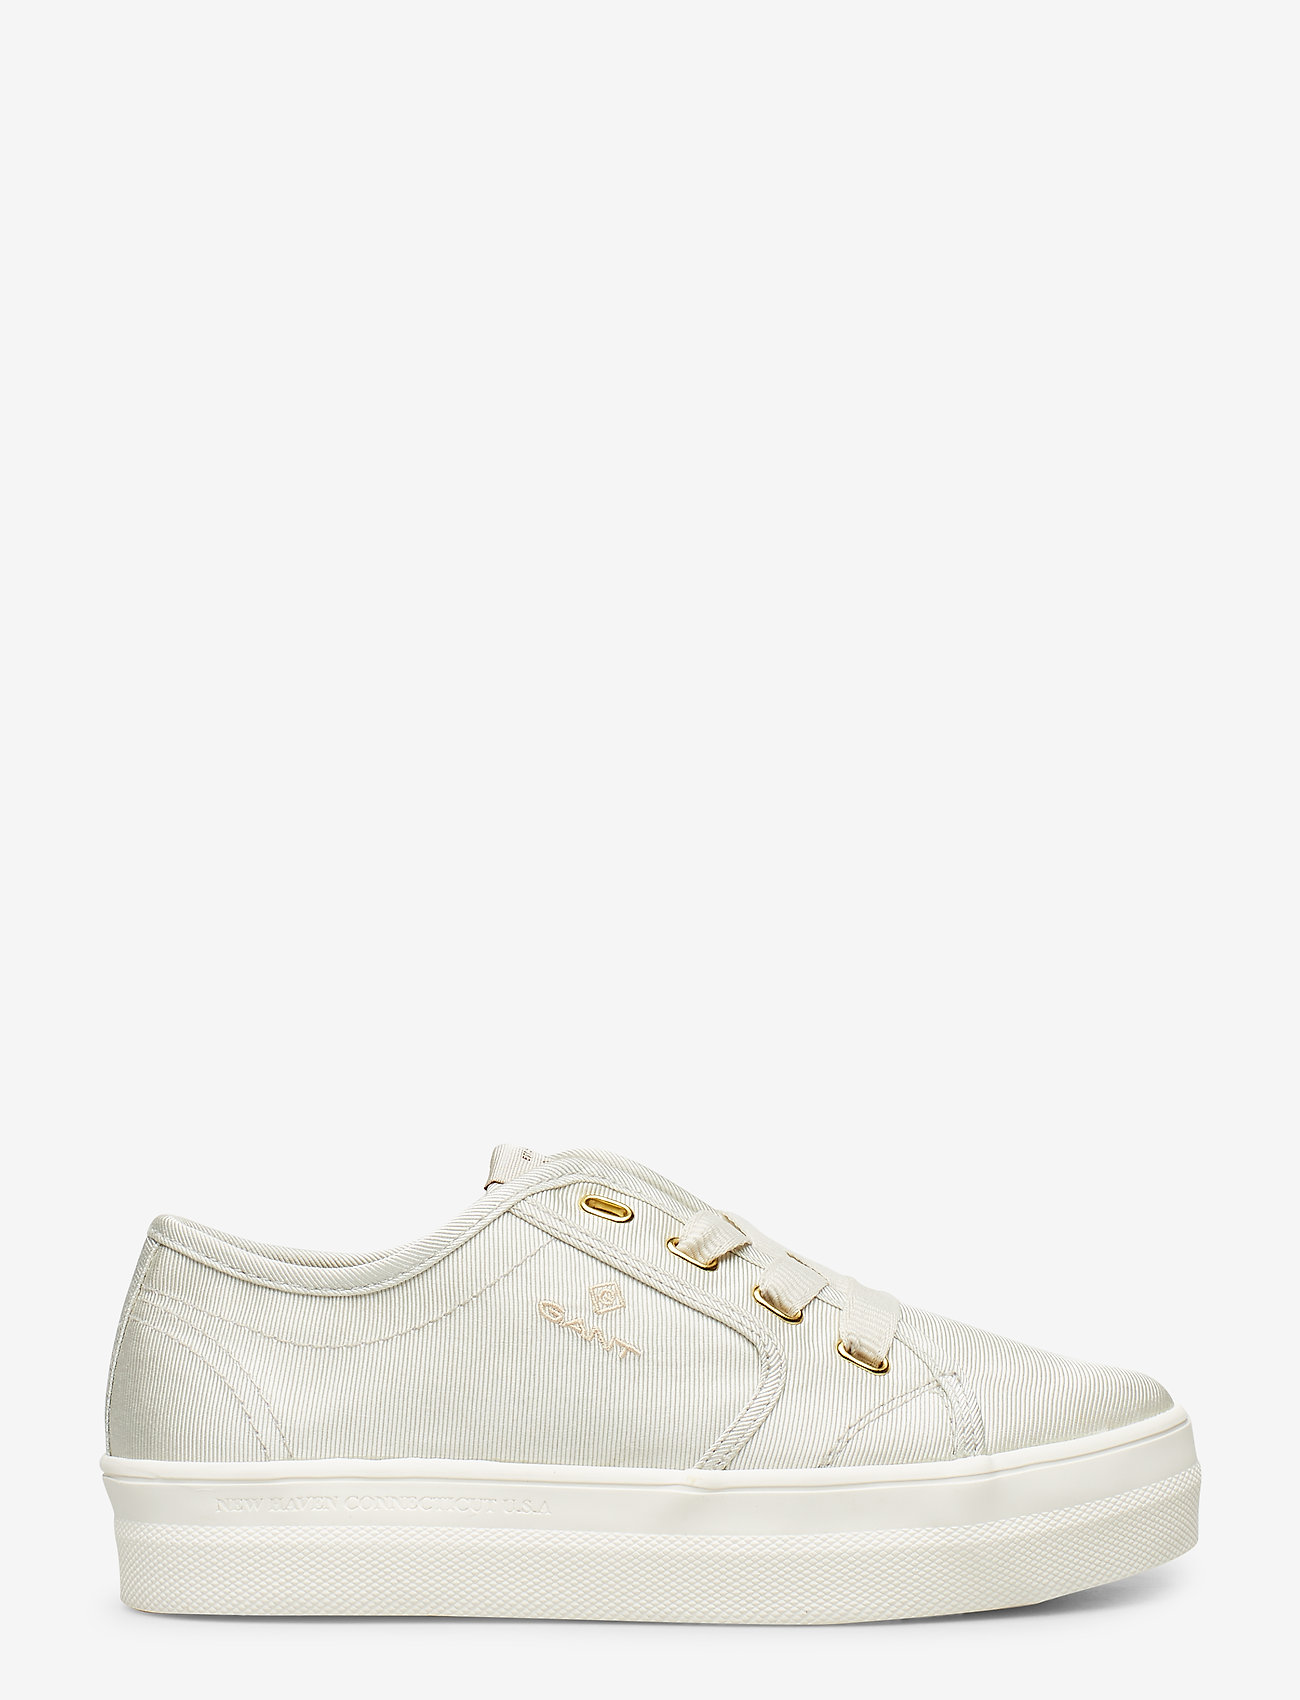 GANT - Leisha Low lace shoes - low top sneakers - silver gray - 1